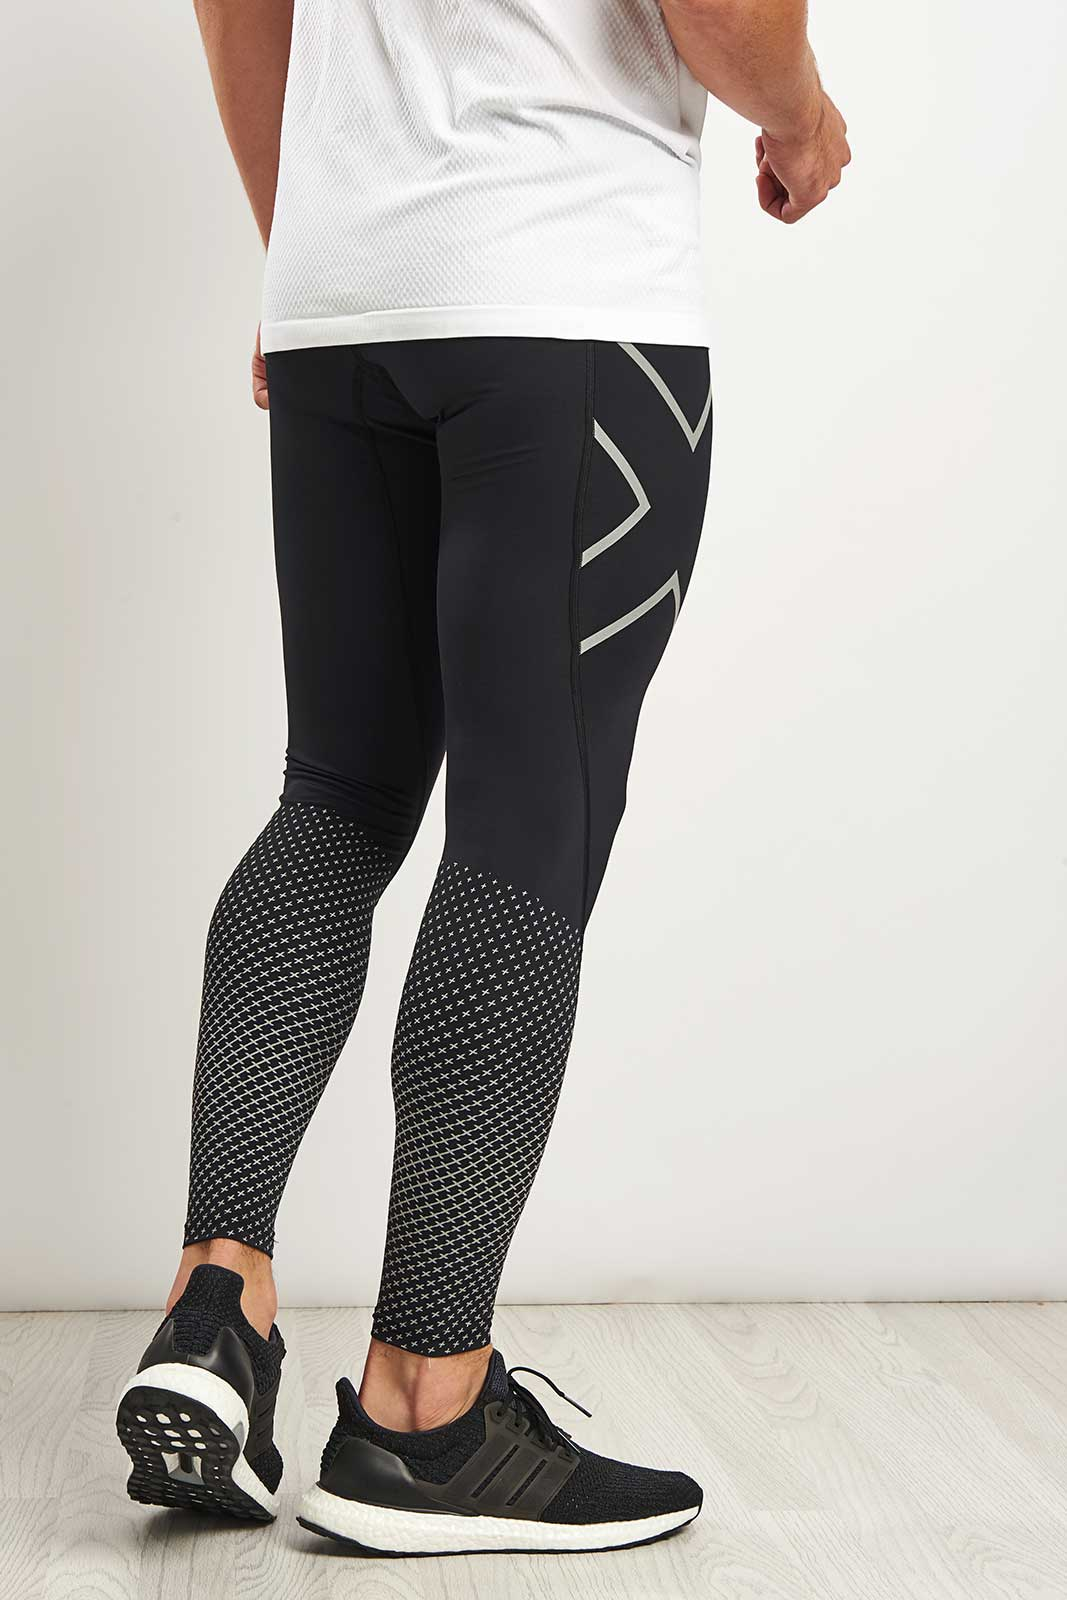 2XU Reflect - Reflective Compression Tights image 2 - The Sports Edit